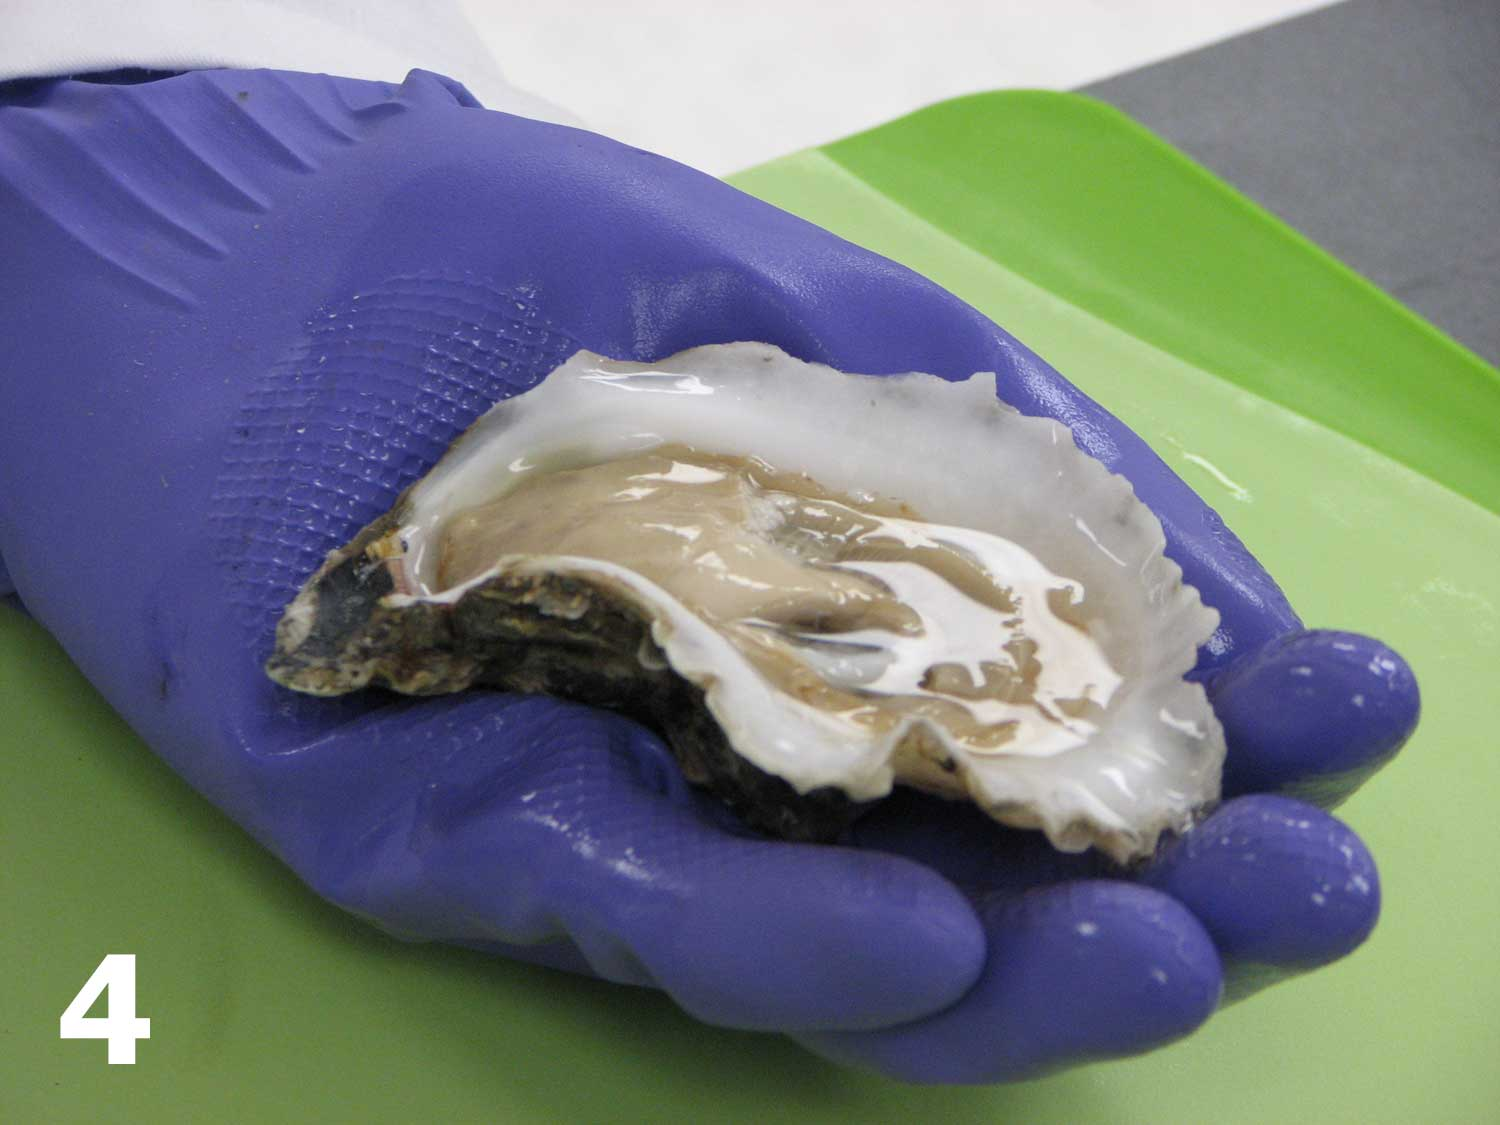 Picture 4: Someone shucking an oyster.